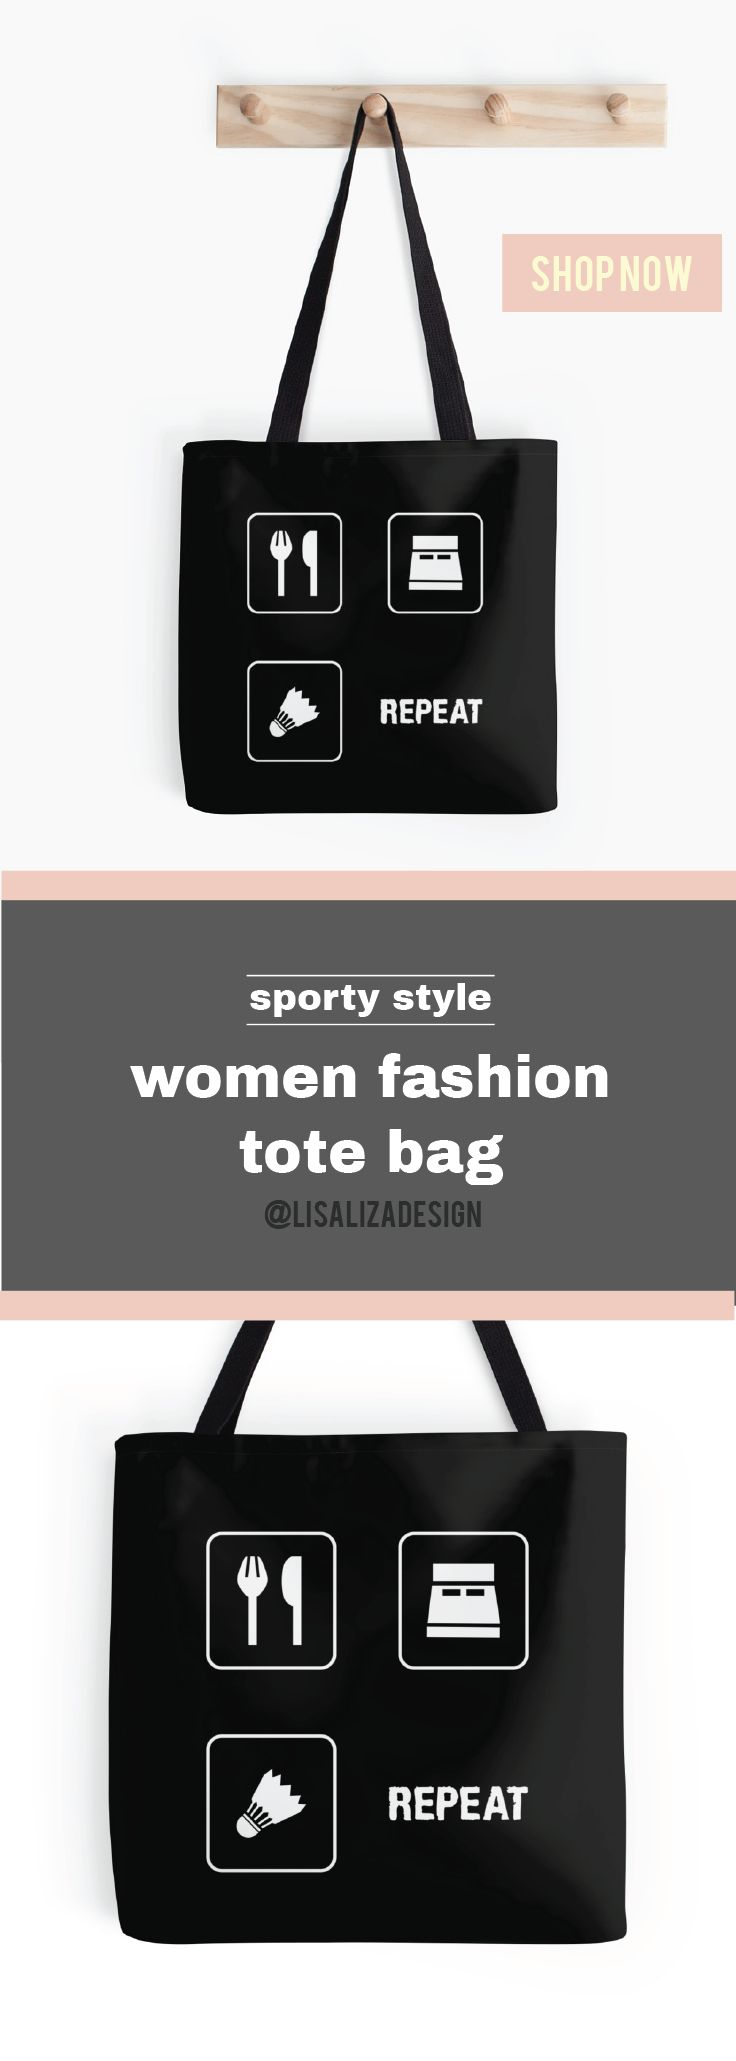 Trendy Eat Sleep Badminton Repeat Sport Design Tote Bags  Shop tote bags in original artwork carry them everyday everywhere you go.  Show Your Personality ! All artwork printed on High Quality and durable totes.   #Totebags #Womenfashion #Gifts #Festivegifts #Causal #outdoor   #Holidaygifts #Outdoor #ForTeens #Ladies #presents #Lisaliza   #RedbubbleTote #RedBubble #Teepublic #giftideas #Sport #Badminton  #eatsleeprepeat #Fitness #Health